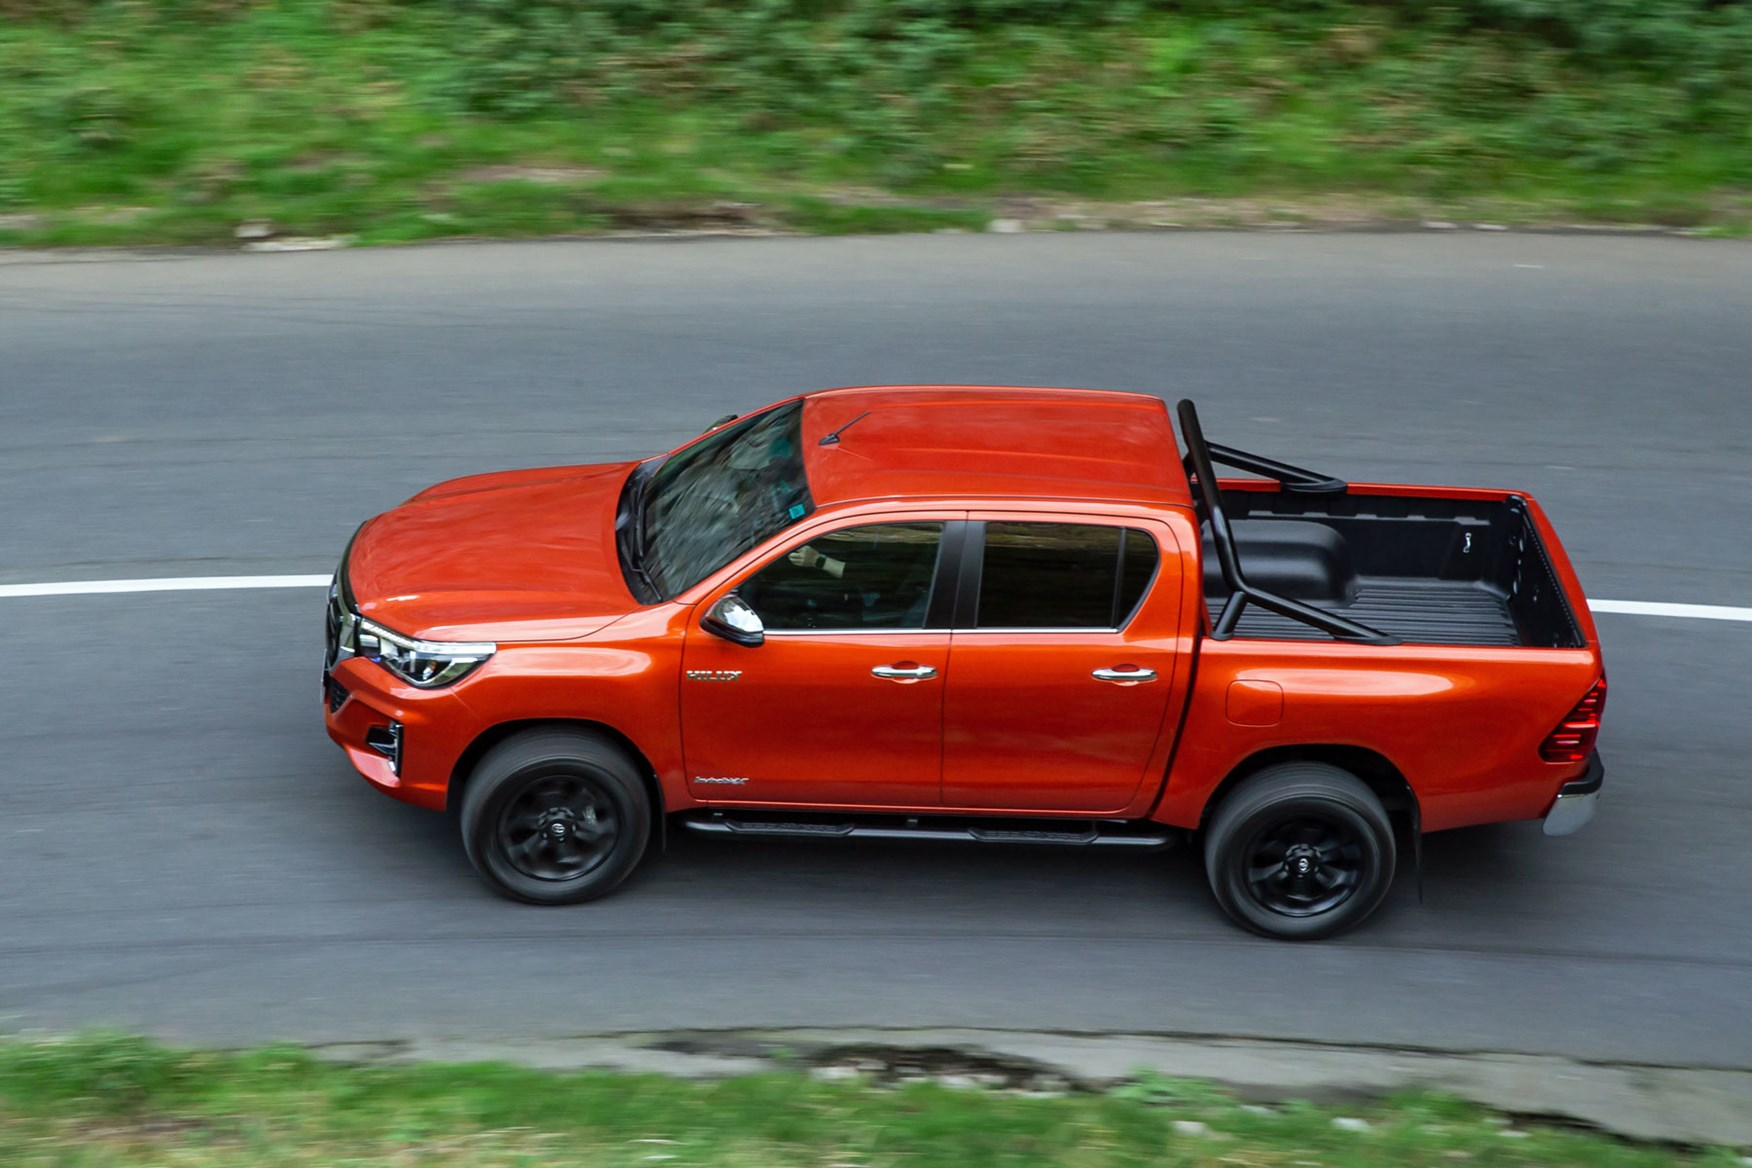 Toyota Hilux Invincible X review - top view, driving, orange